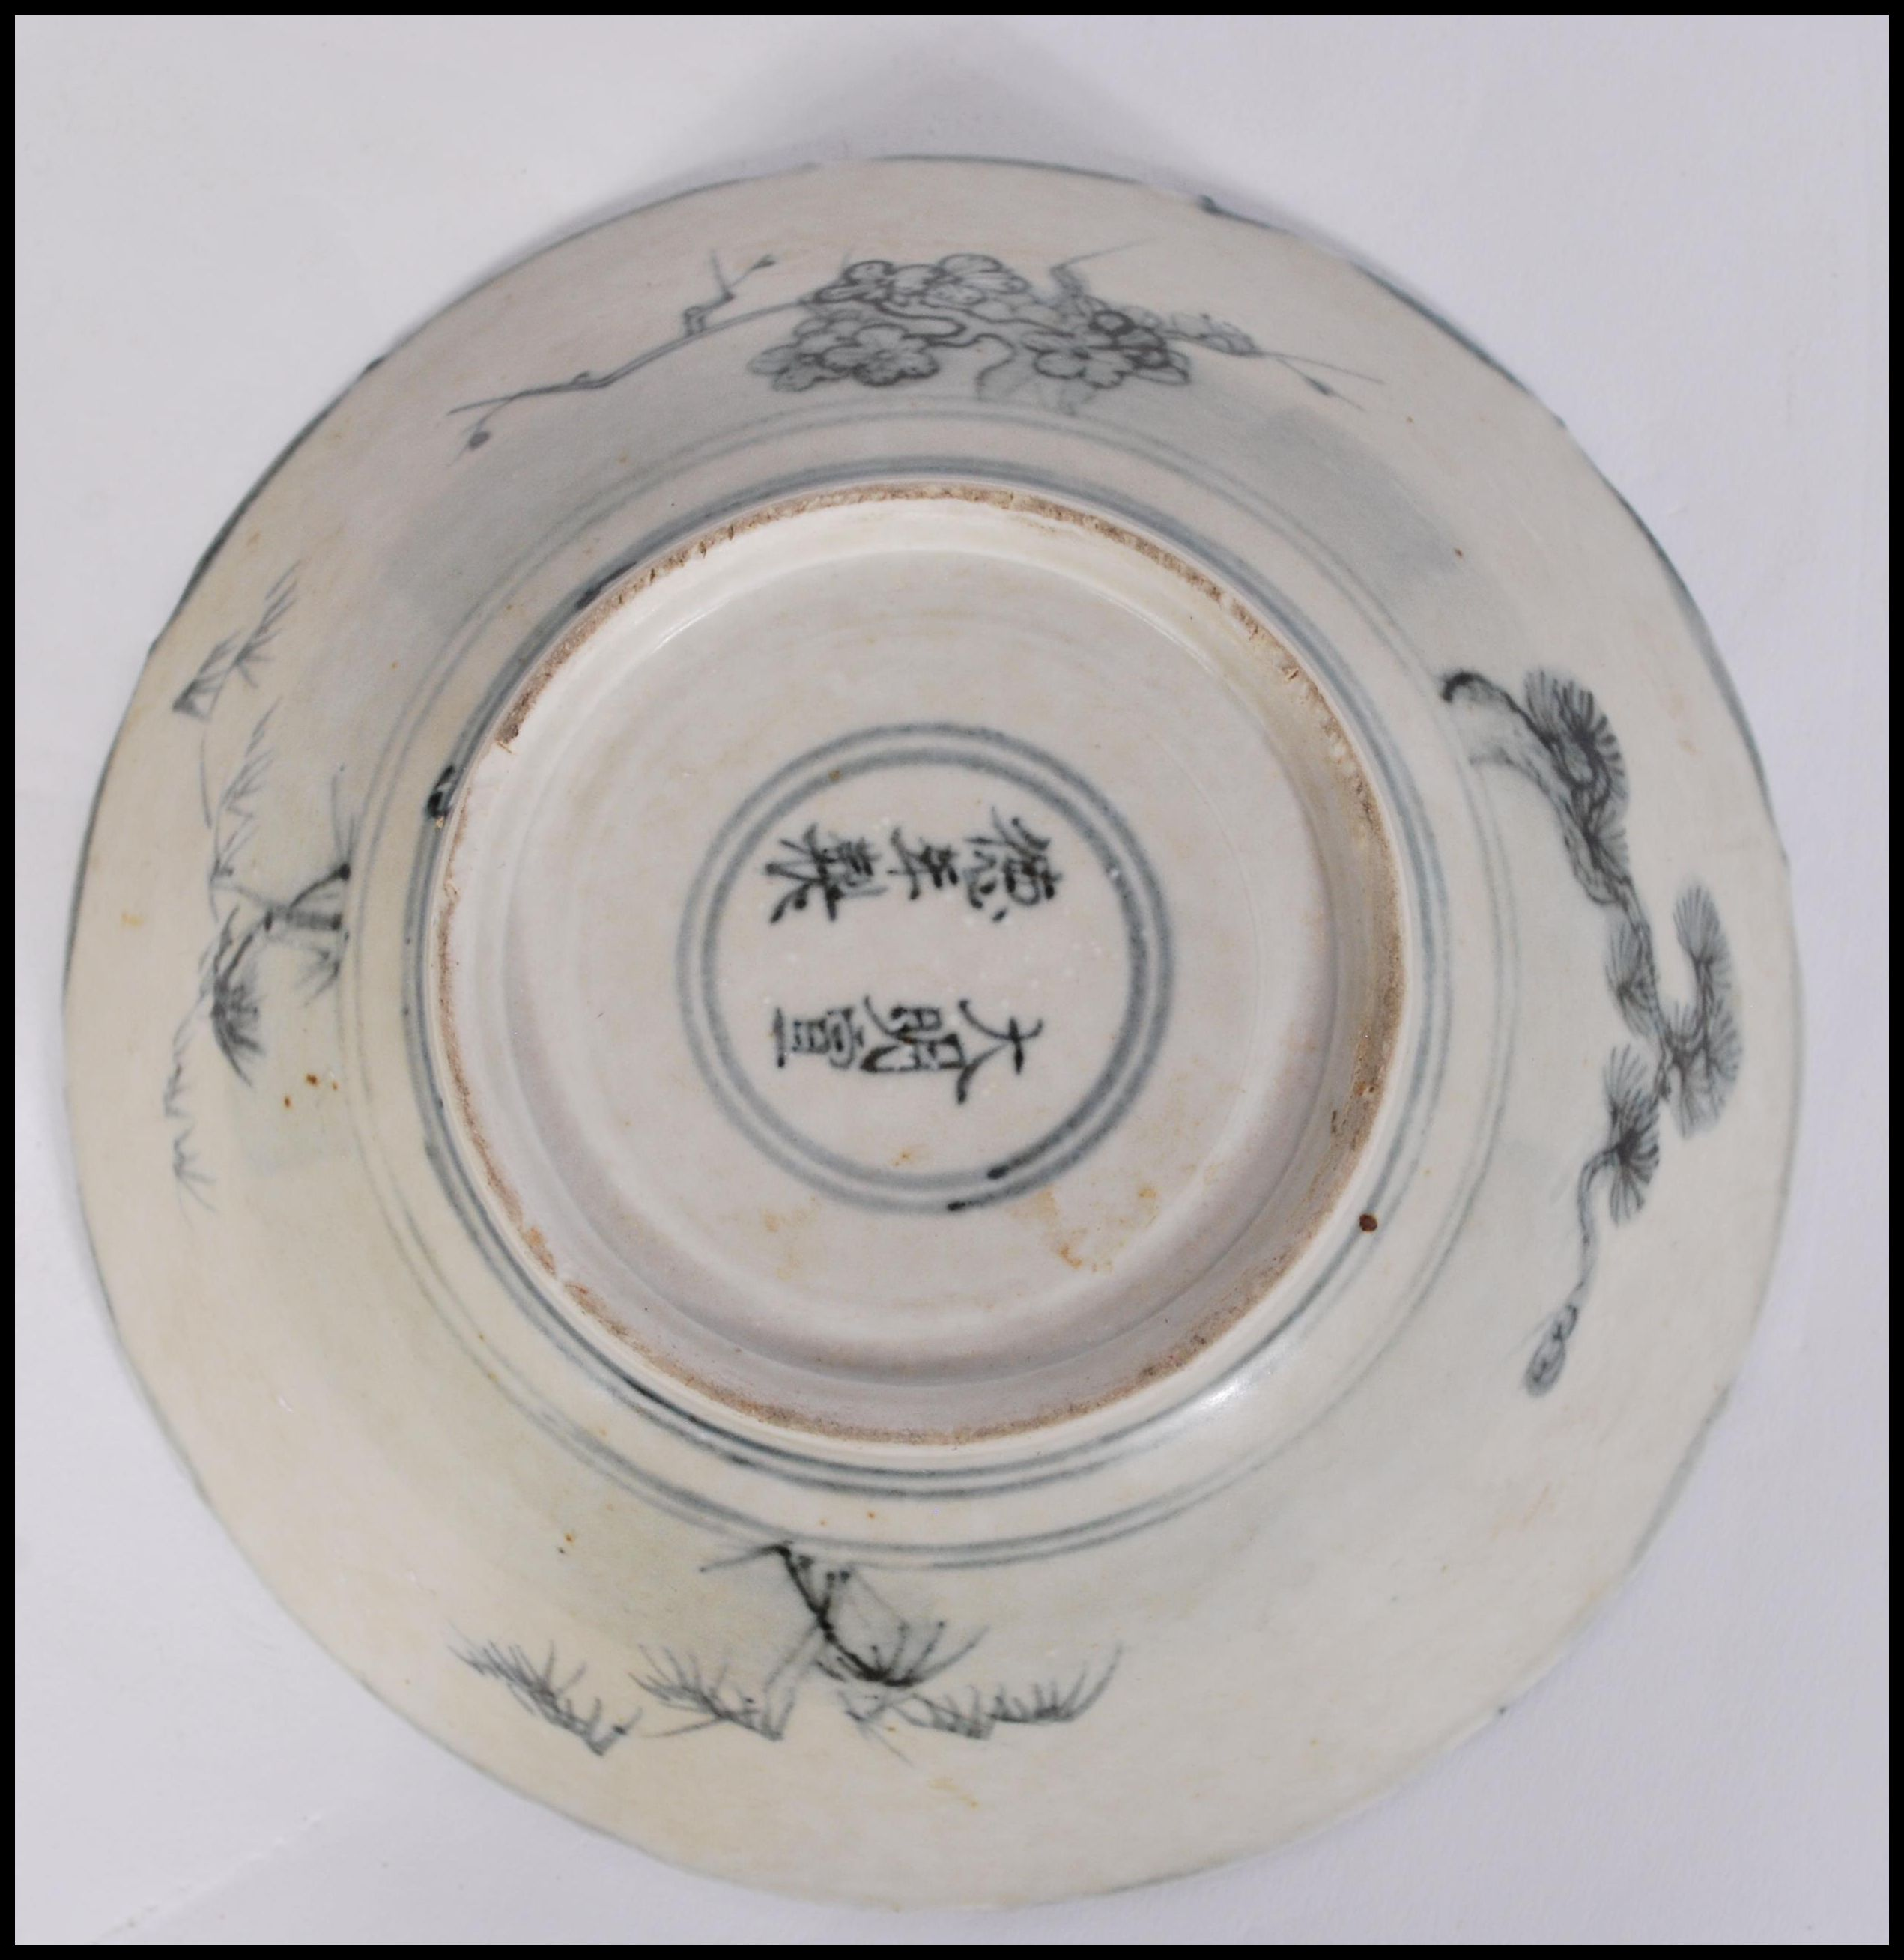 Lot 37 - A 19th century Chinese bowl having decoration of maiden with plants and geometric borders. Six